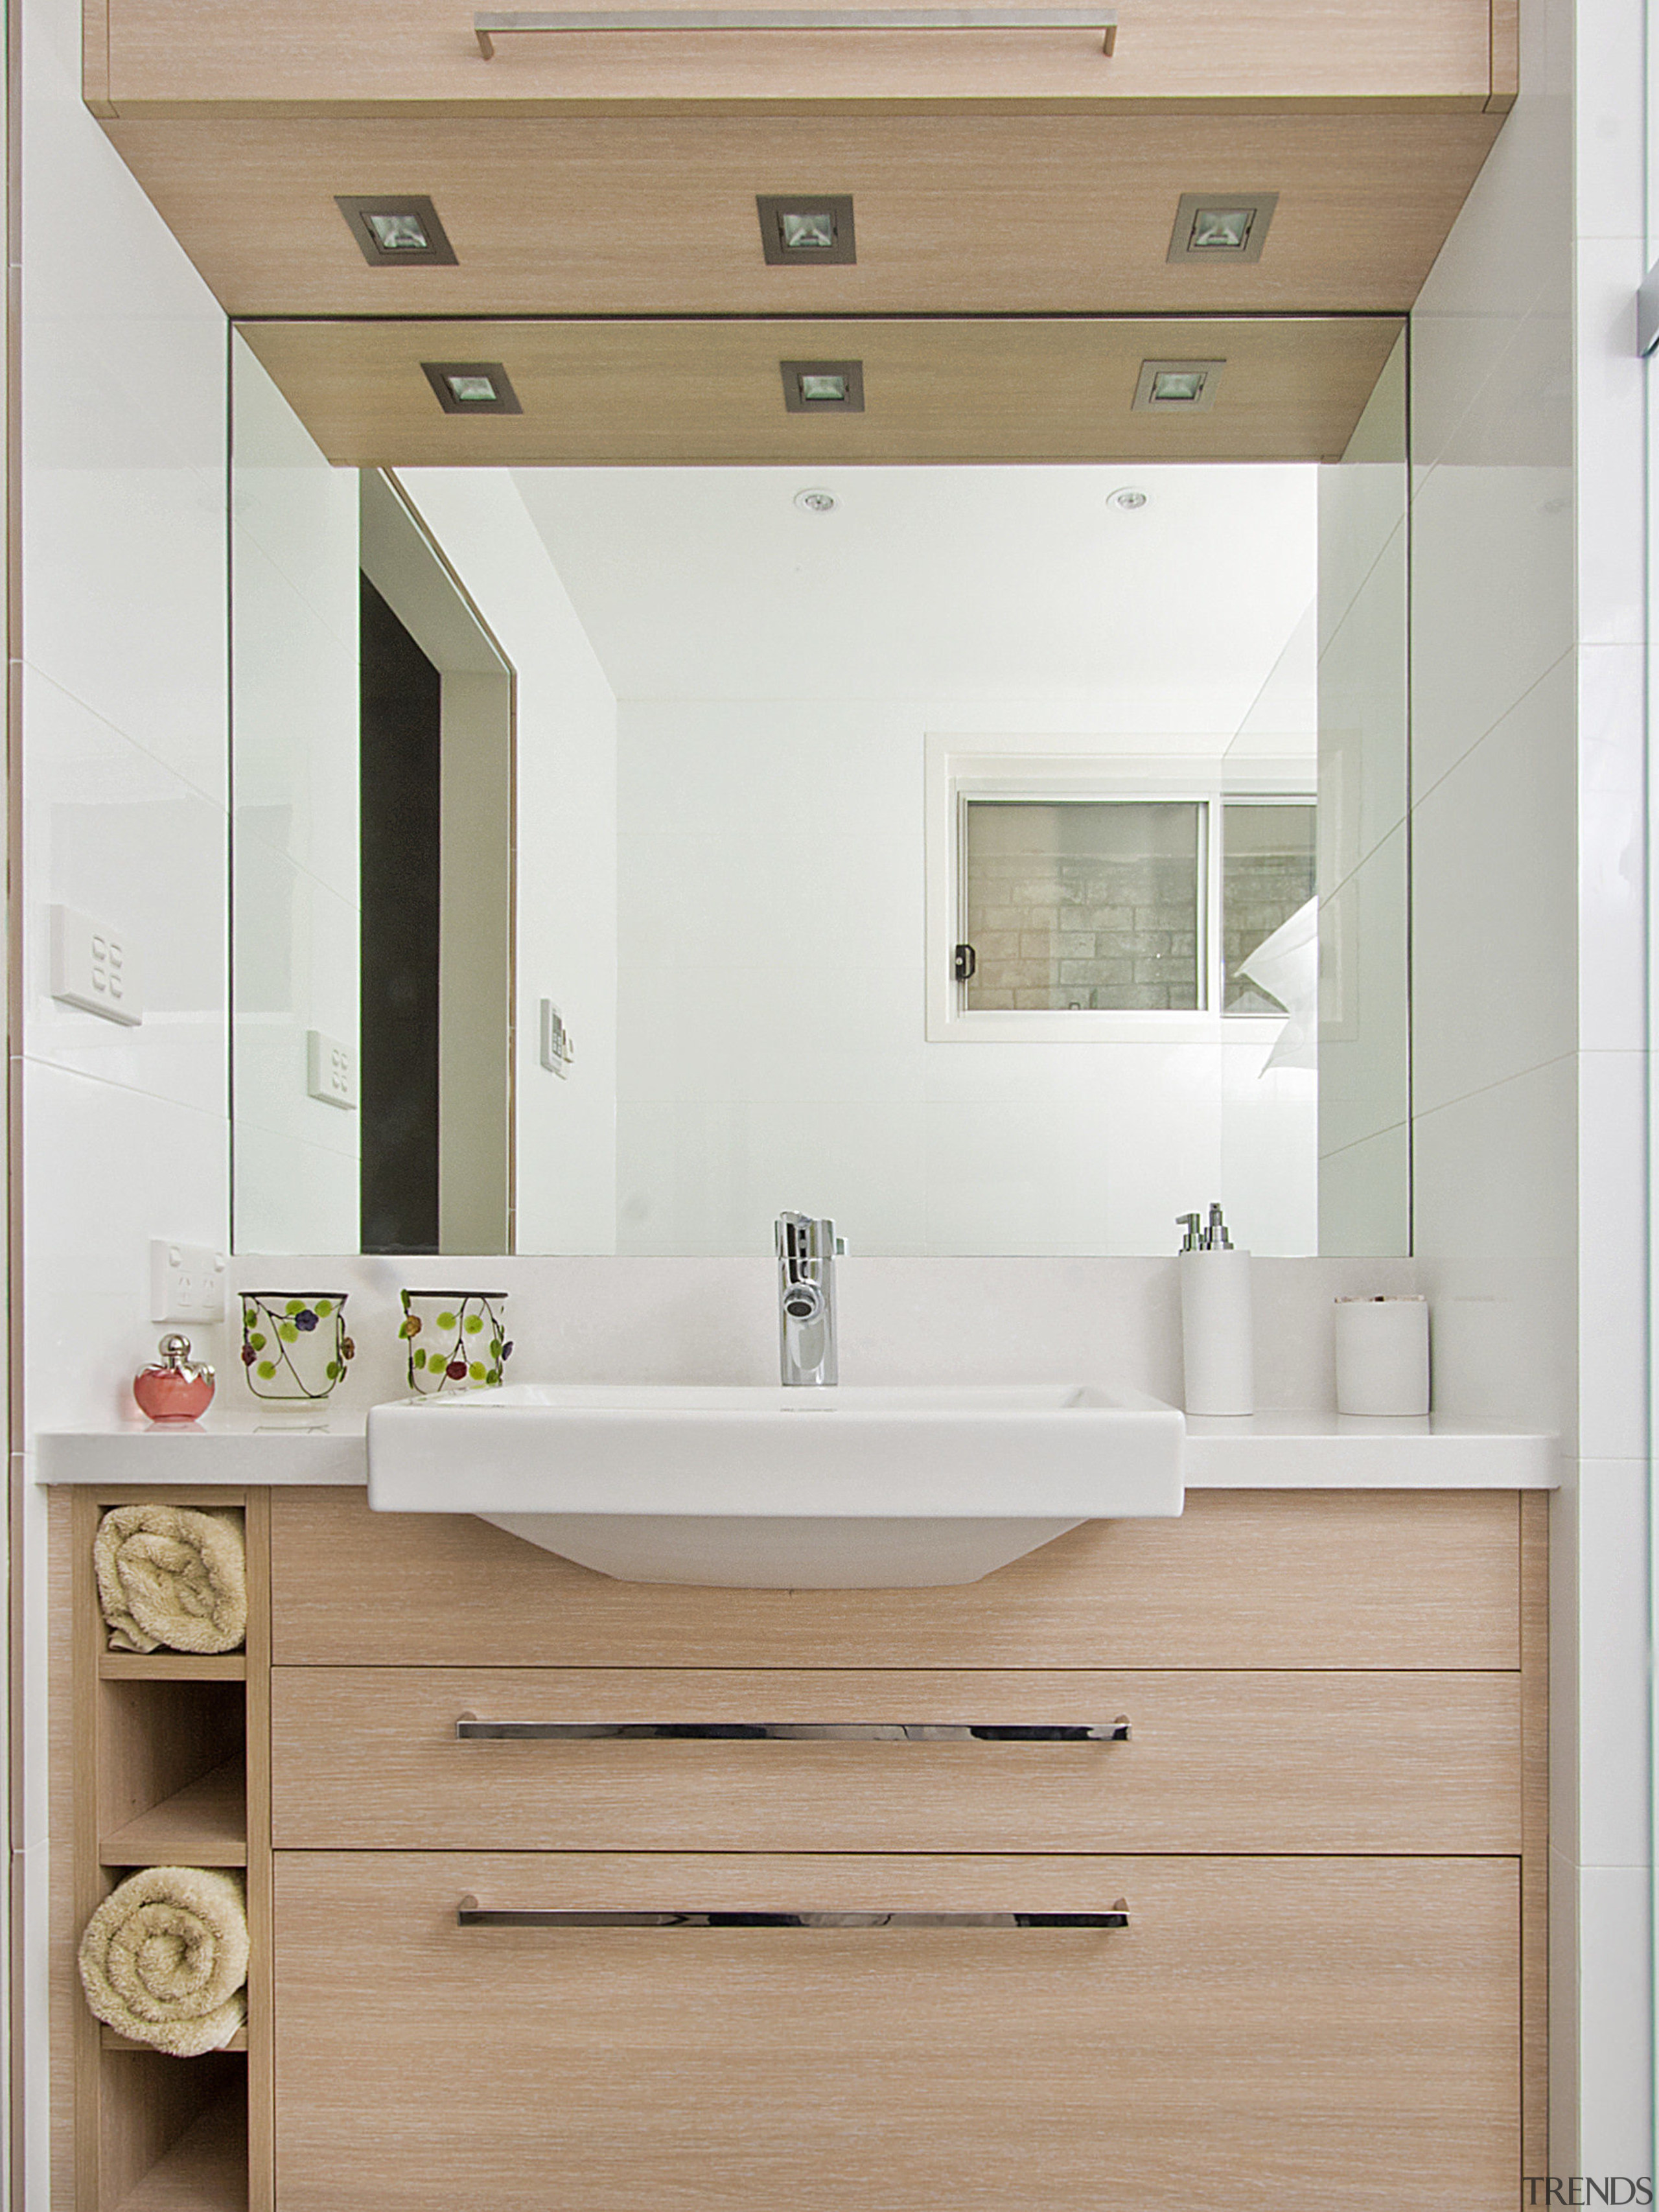 View of bathroom featuring wood floors, white bench bathroom, bathroom accessory, bathroom cabinet, cabinetry, interior design, product design, sink, white, gray, orange